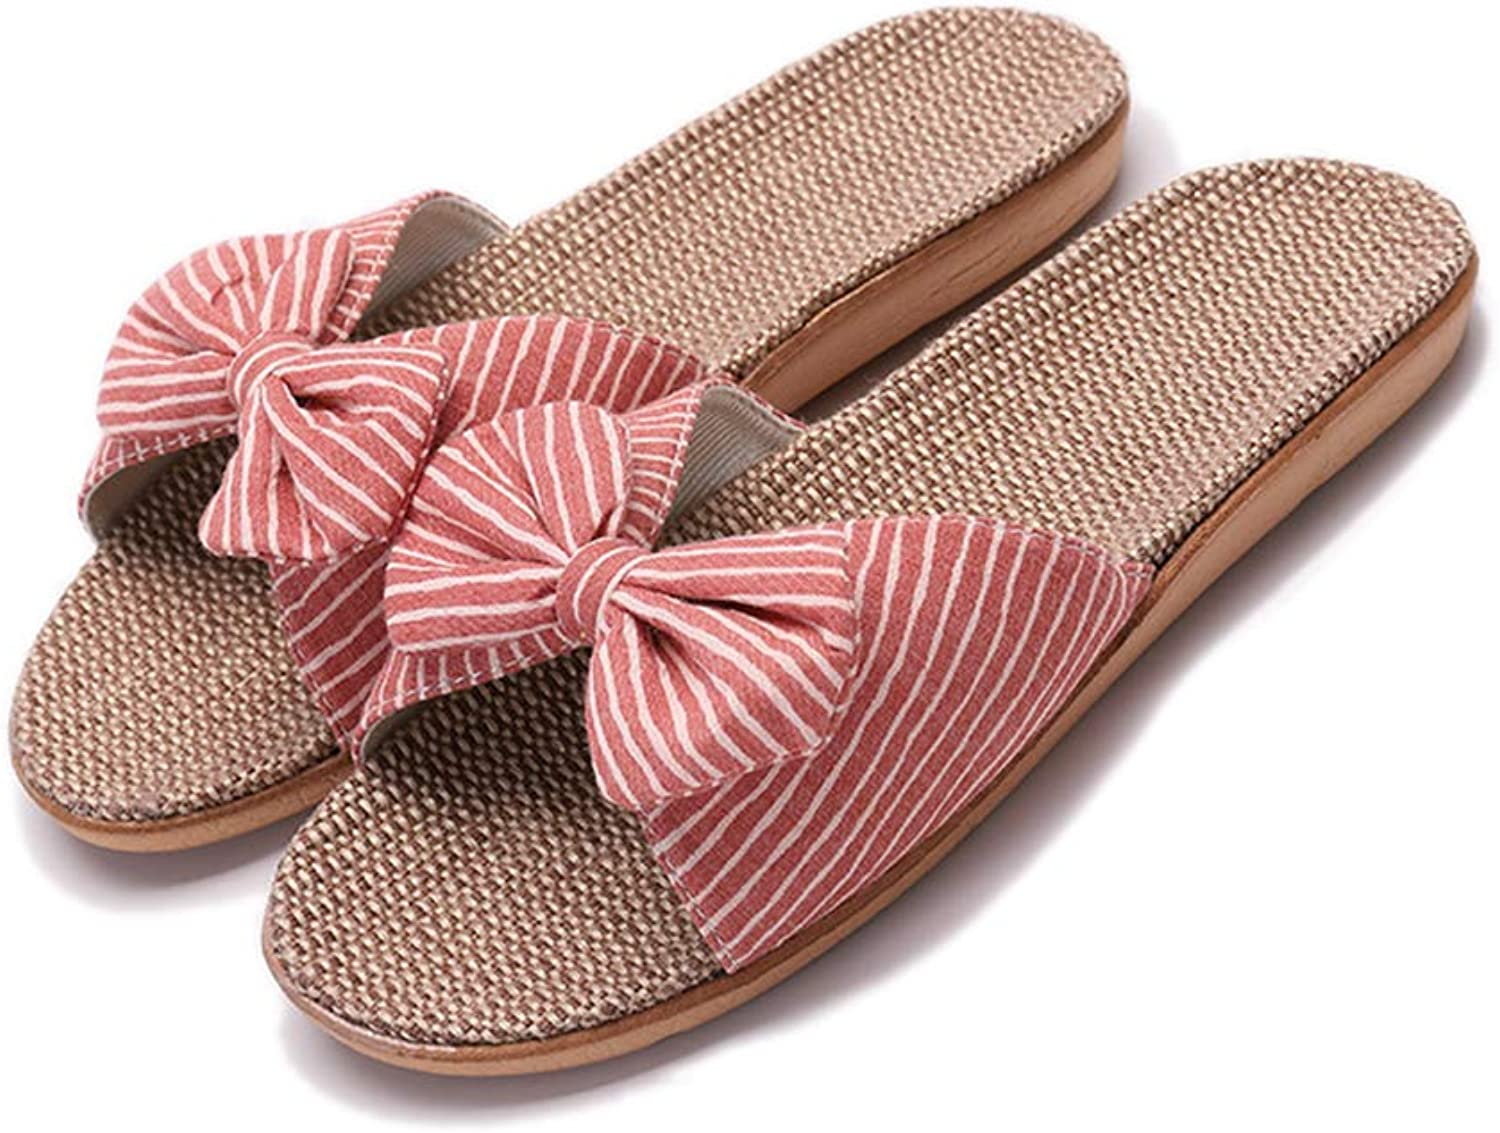 Womens Linen Slippers Non-Slip Casual Sandals, Open Toe Flax Slipper in Summer Home,Red